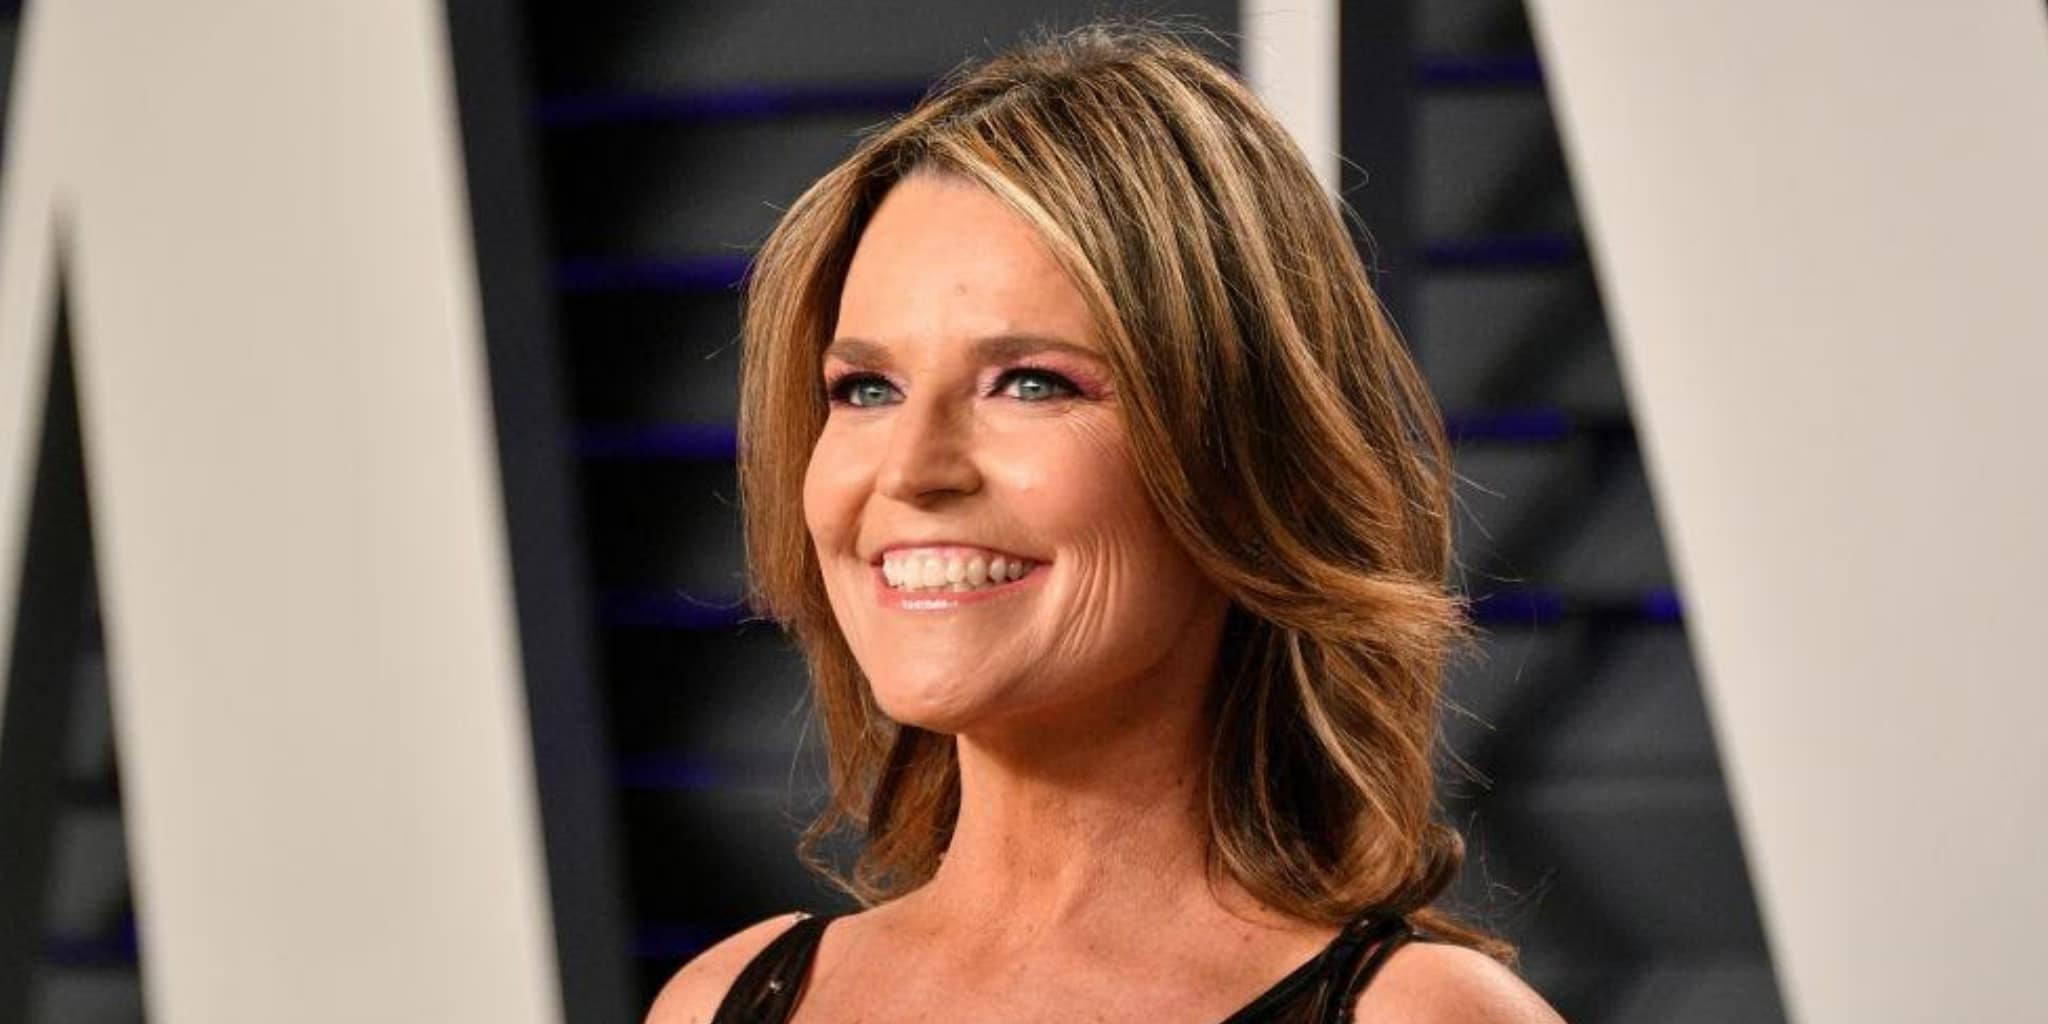 Savannah Guthrie Net worth, age, height, family, husband, salary, other updates